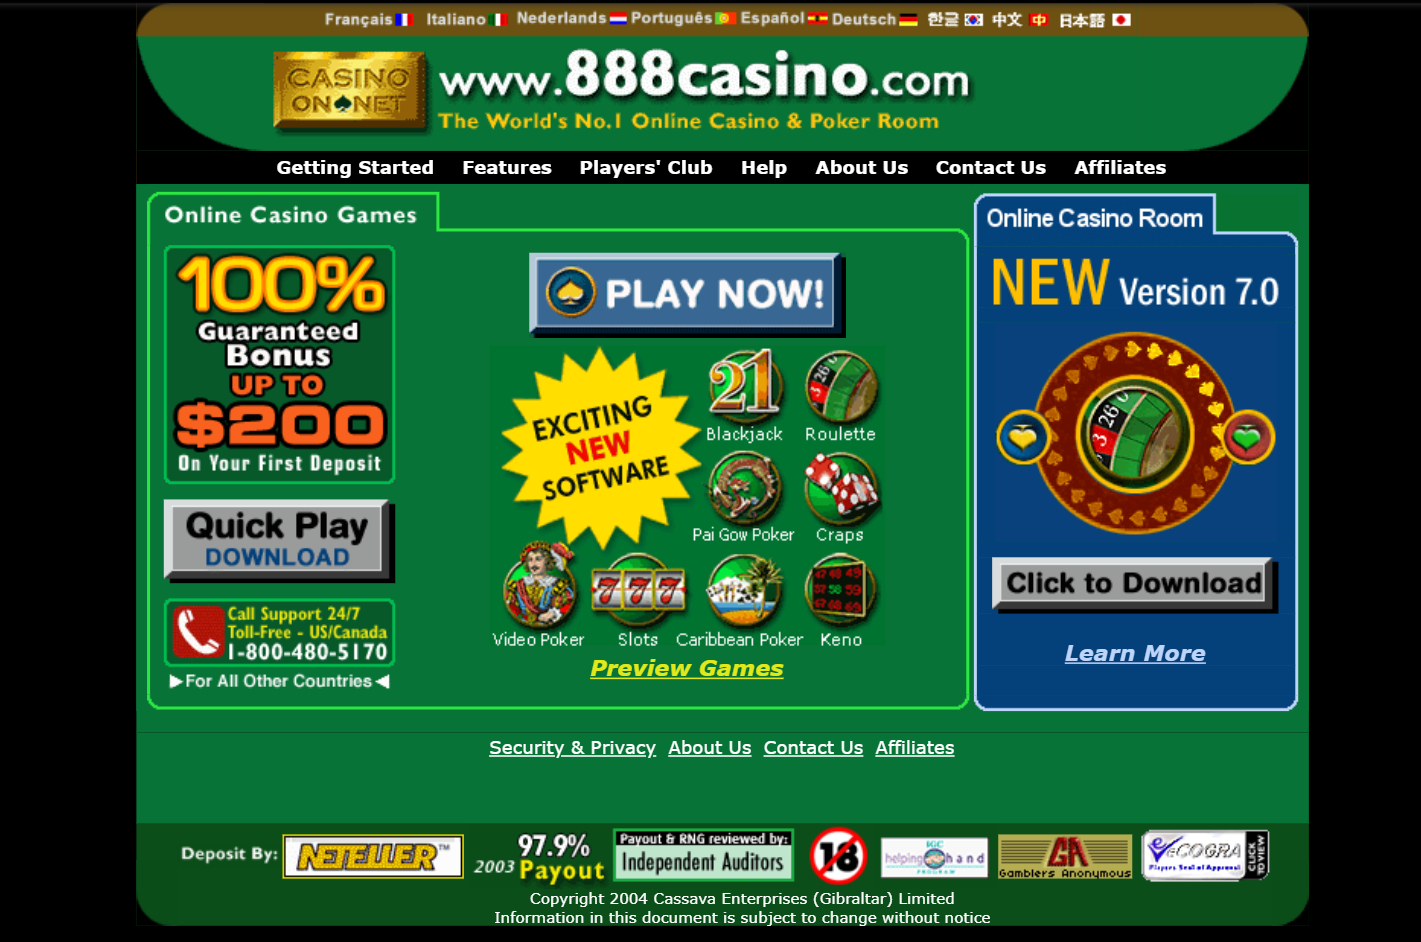 888 casino 2004 metai year kazino evoliucija blackjack roulette slots video poker